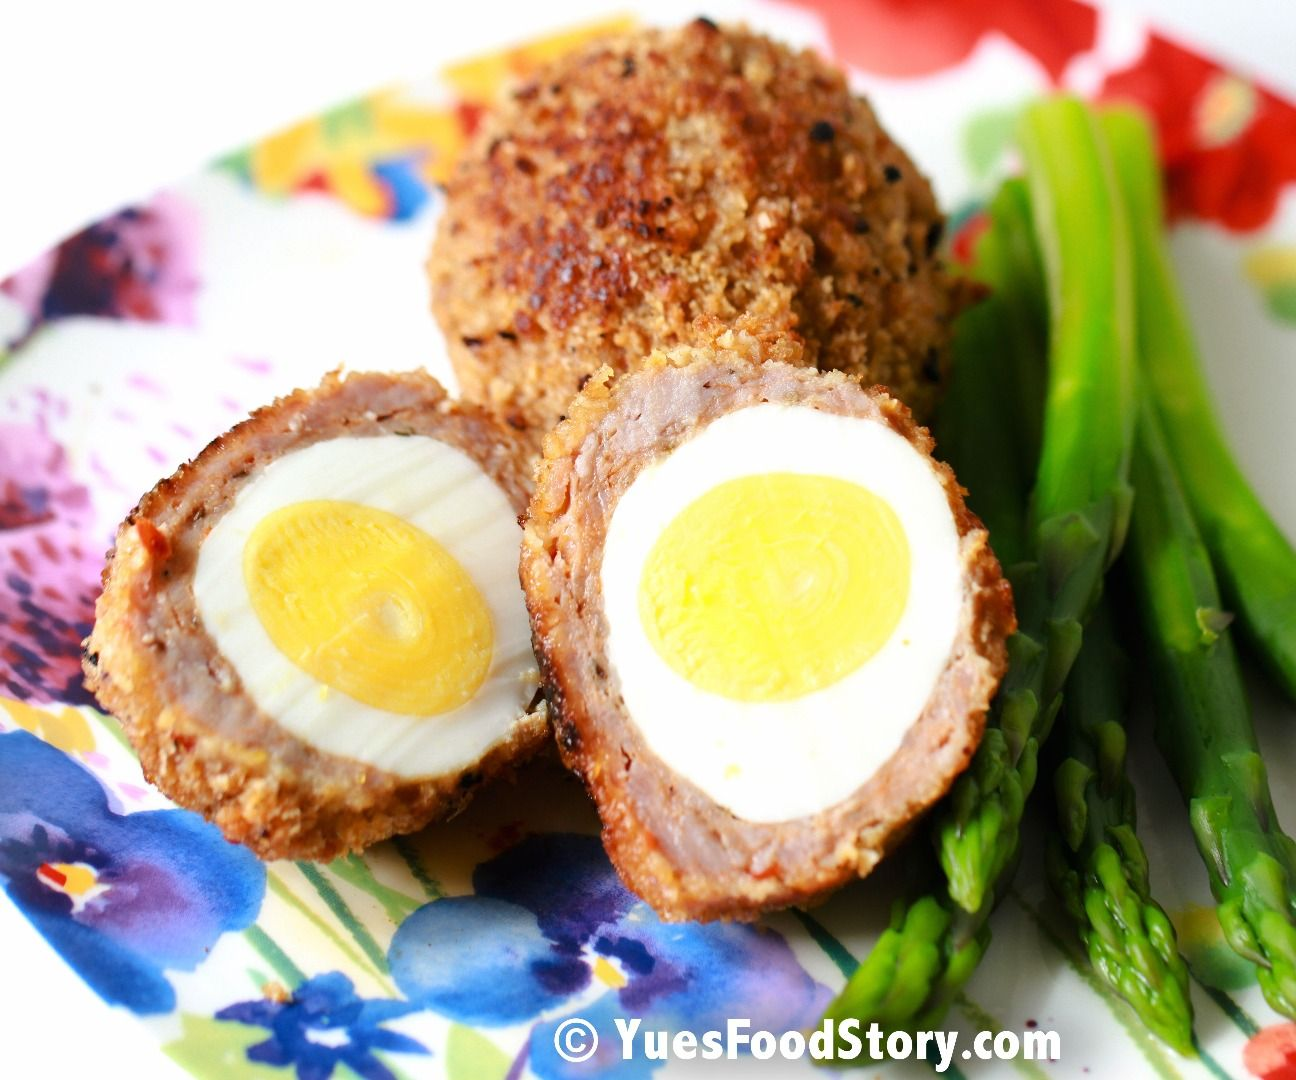 Baked/Fried/Pan Fried Scotch Egg